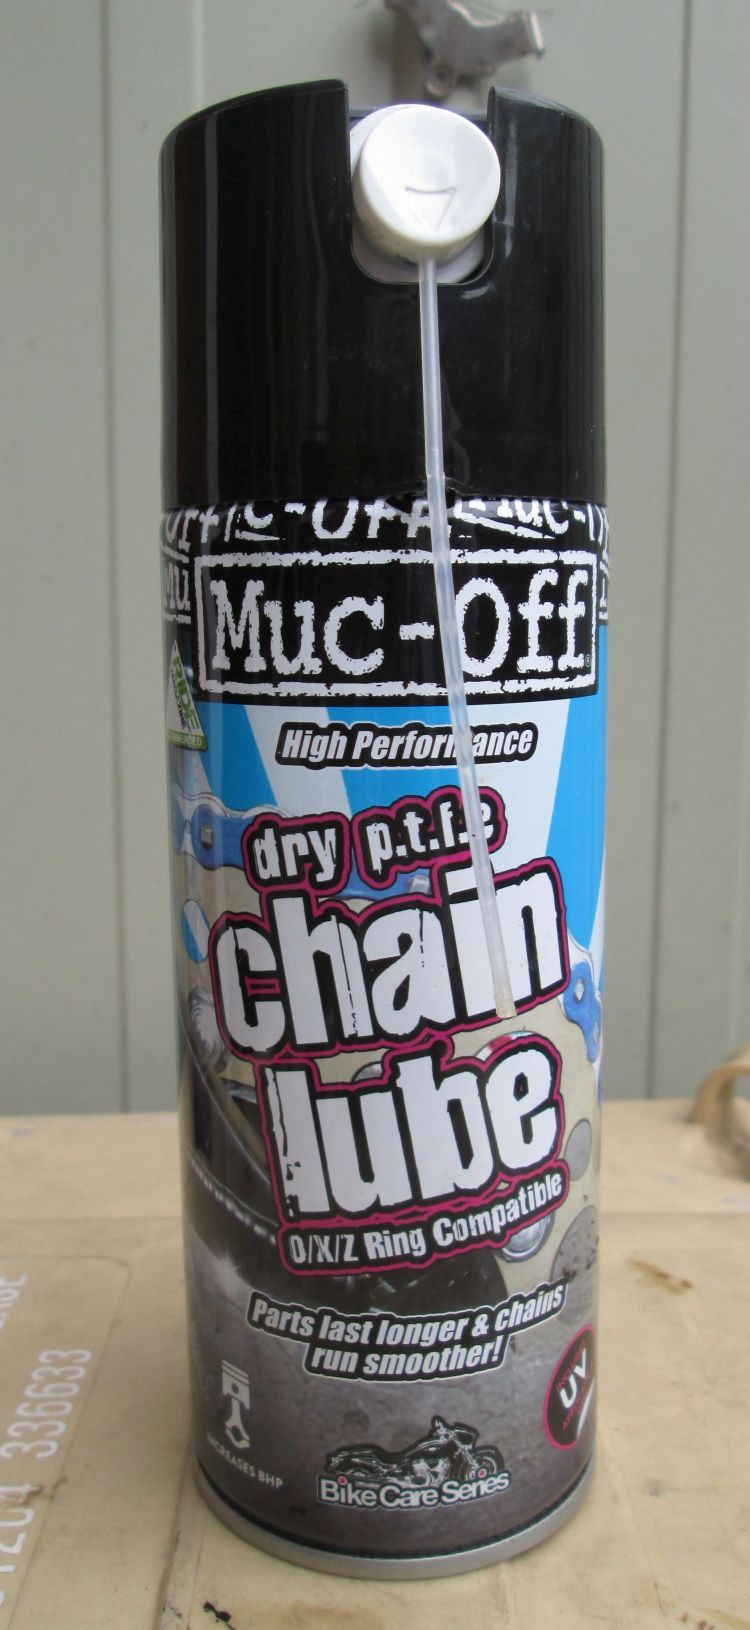 Muc Off Dry P T F E Chain Lube Review